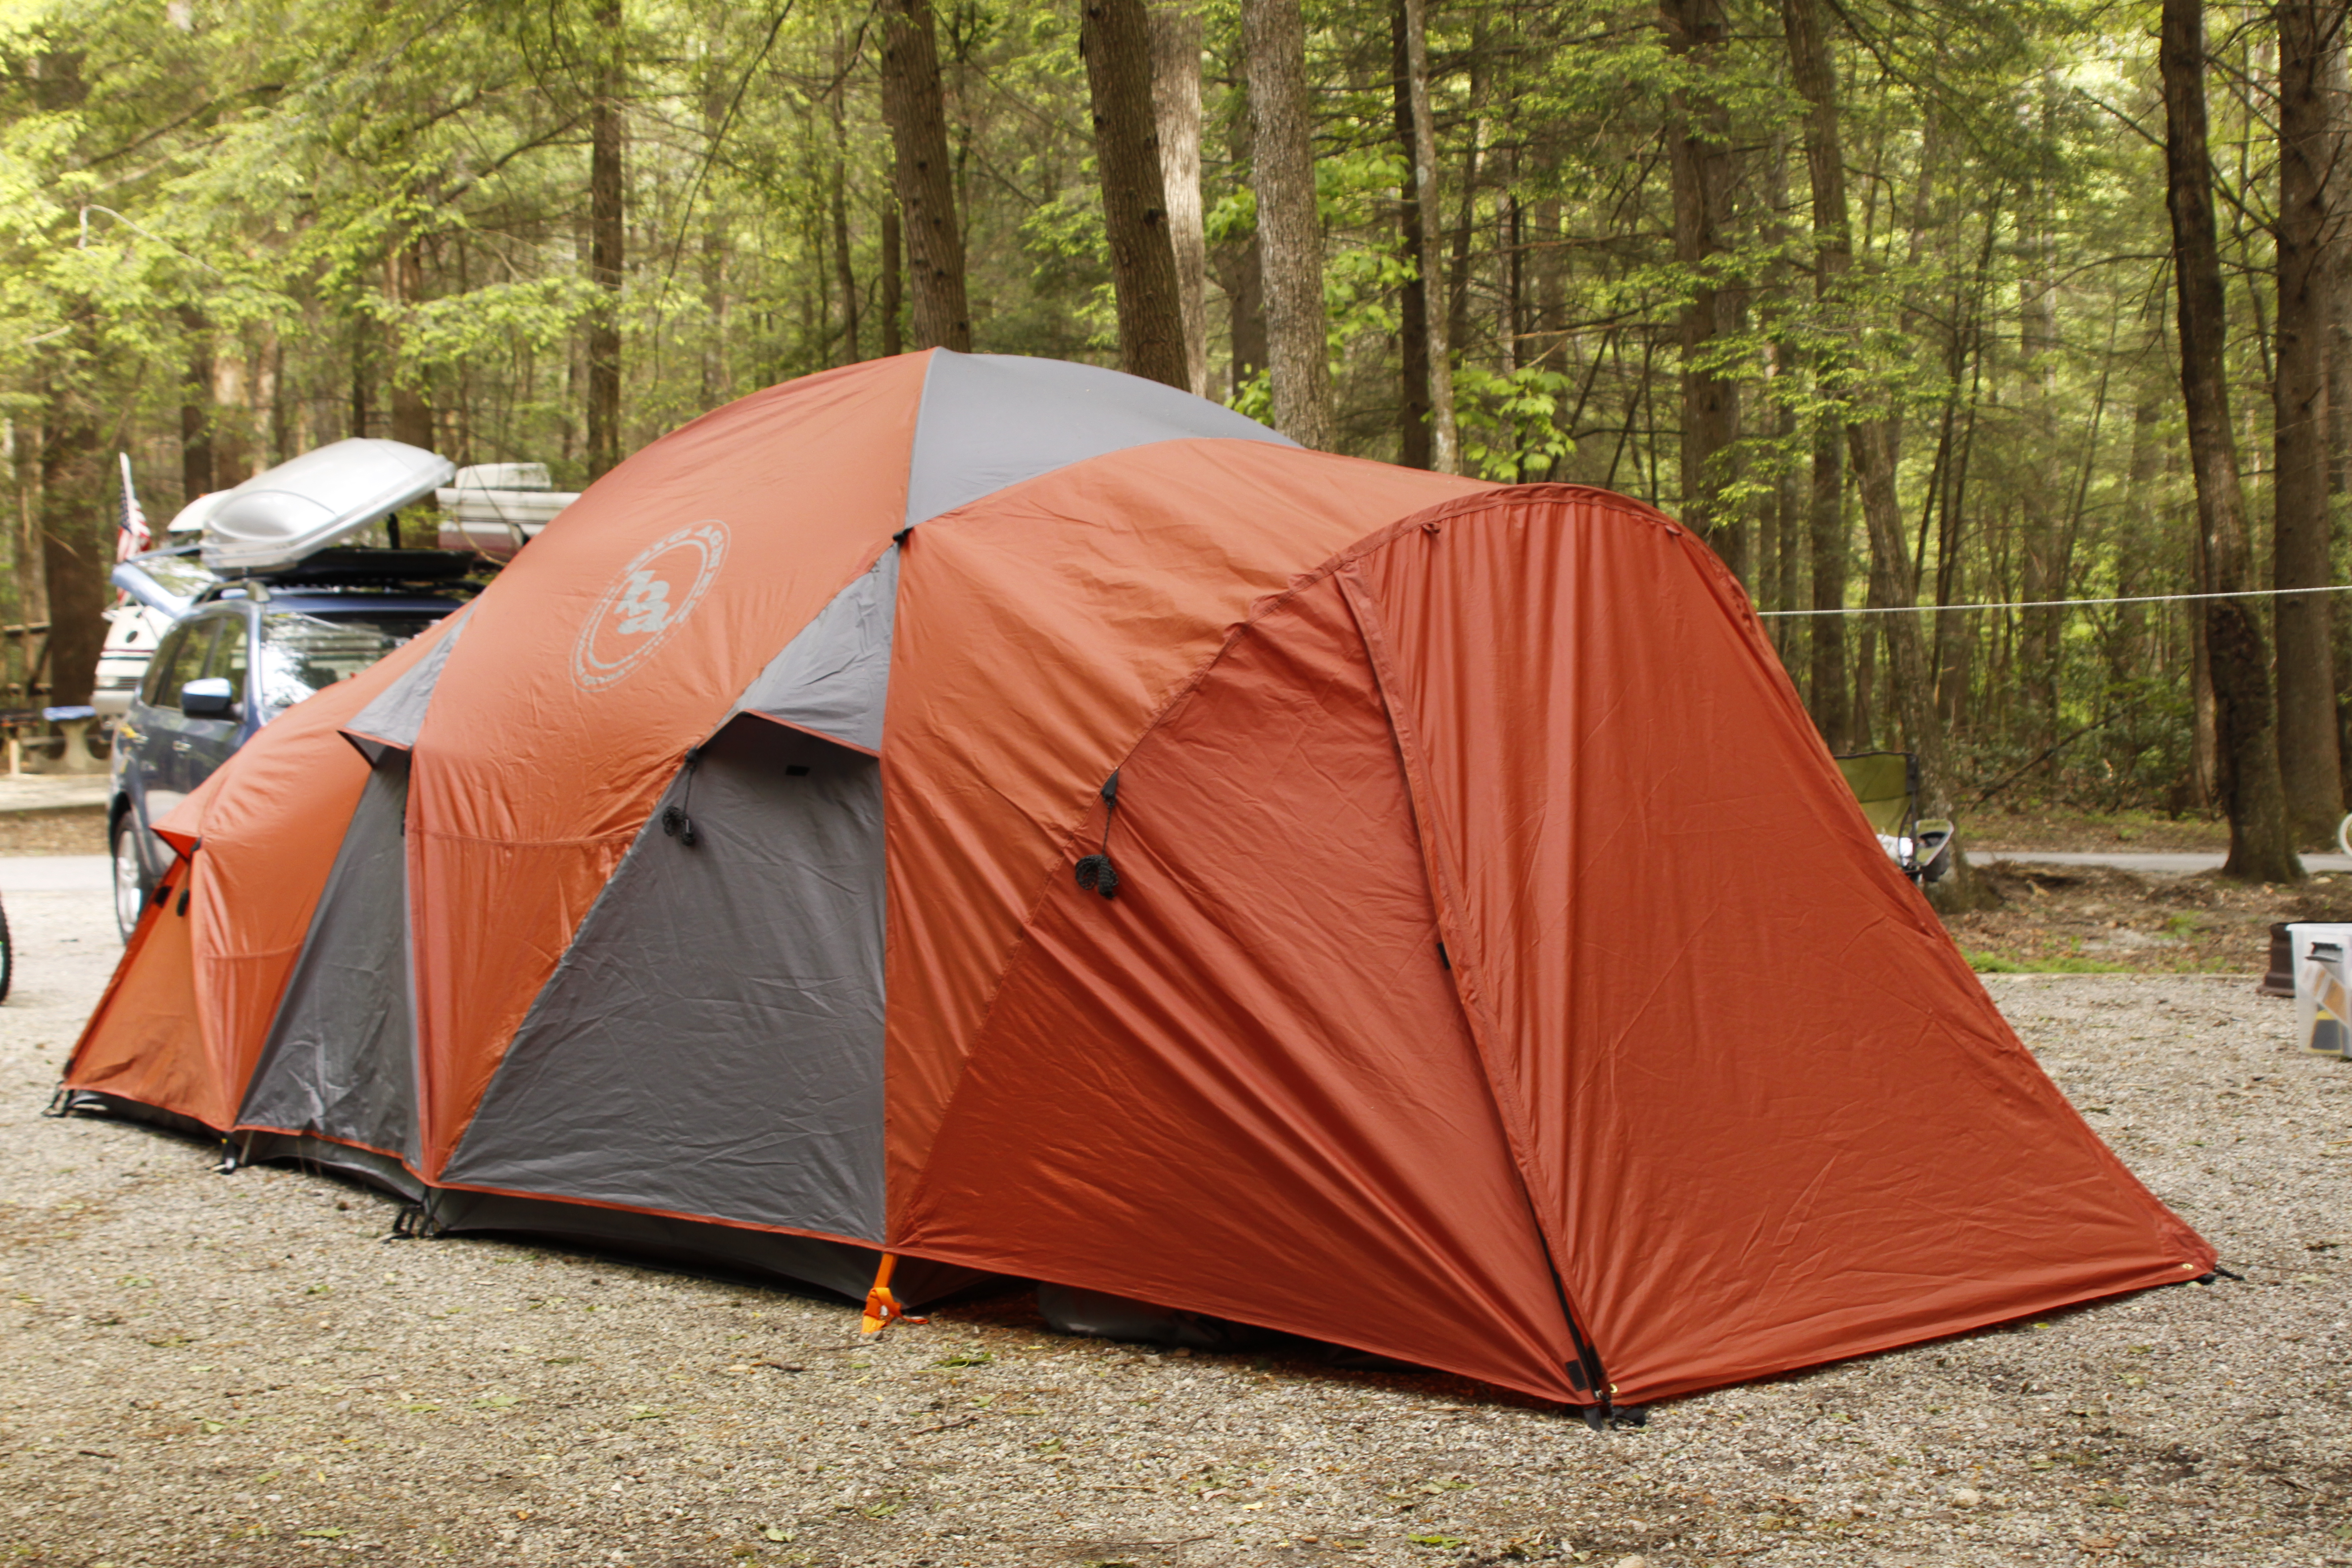 Home Sweet Home: The Big Agnes Flying Diamond 6